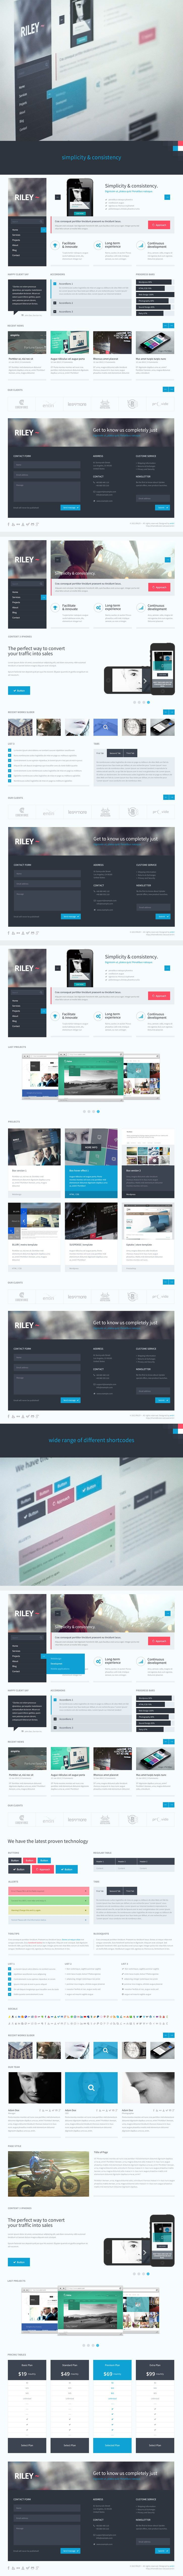 Awesome examples of flat UI design - Riley - Unique PSD template by entiri. If you like UX, design, or design thinking, check out theuxblog.com